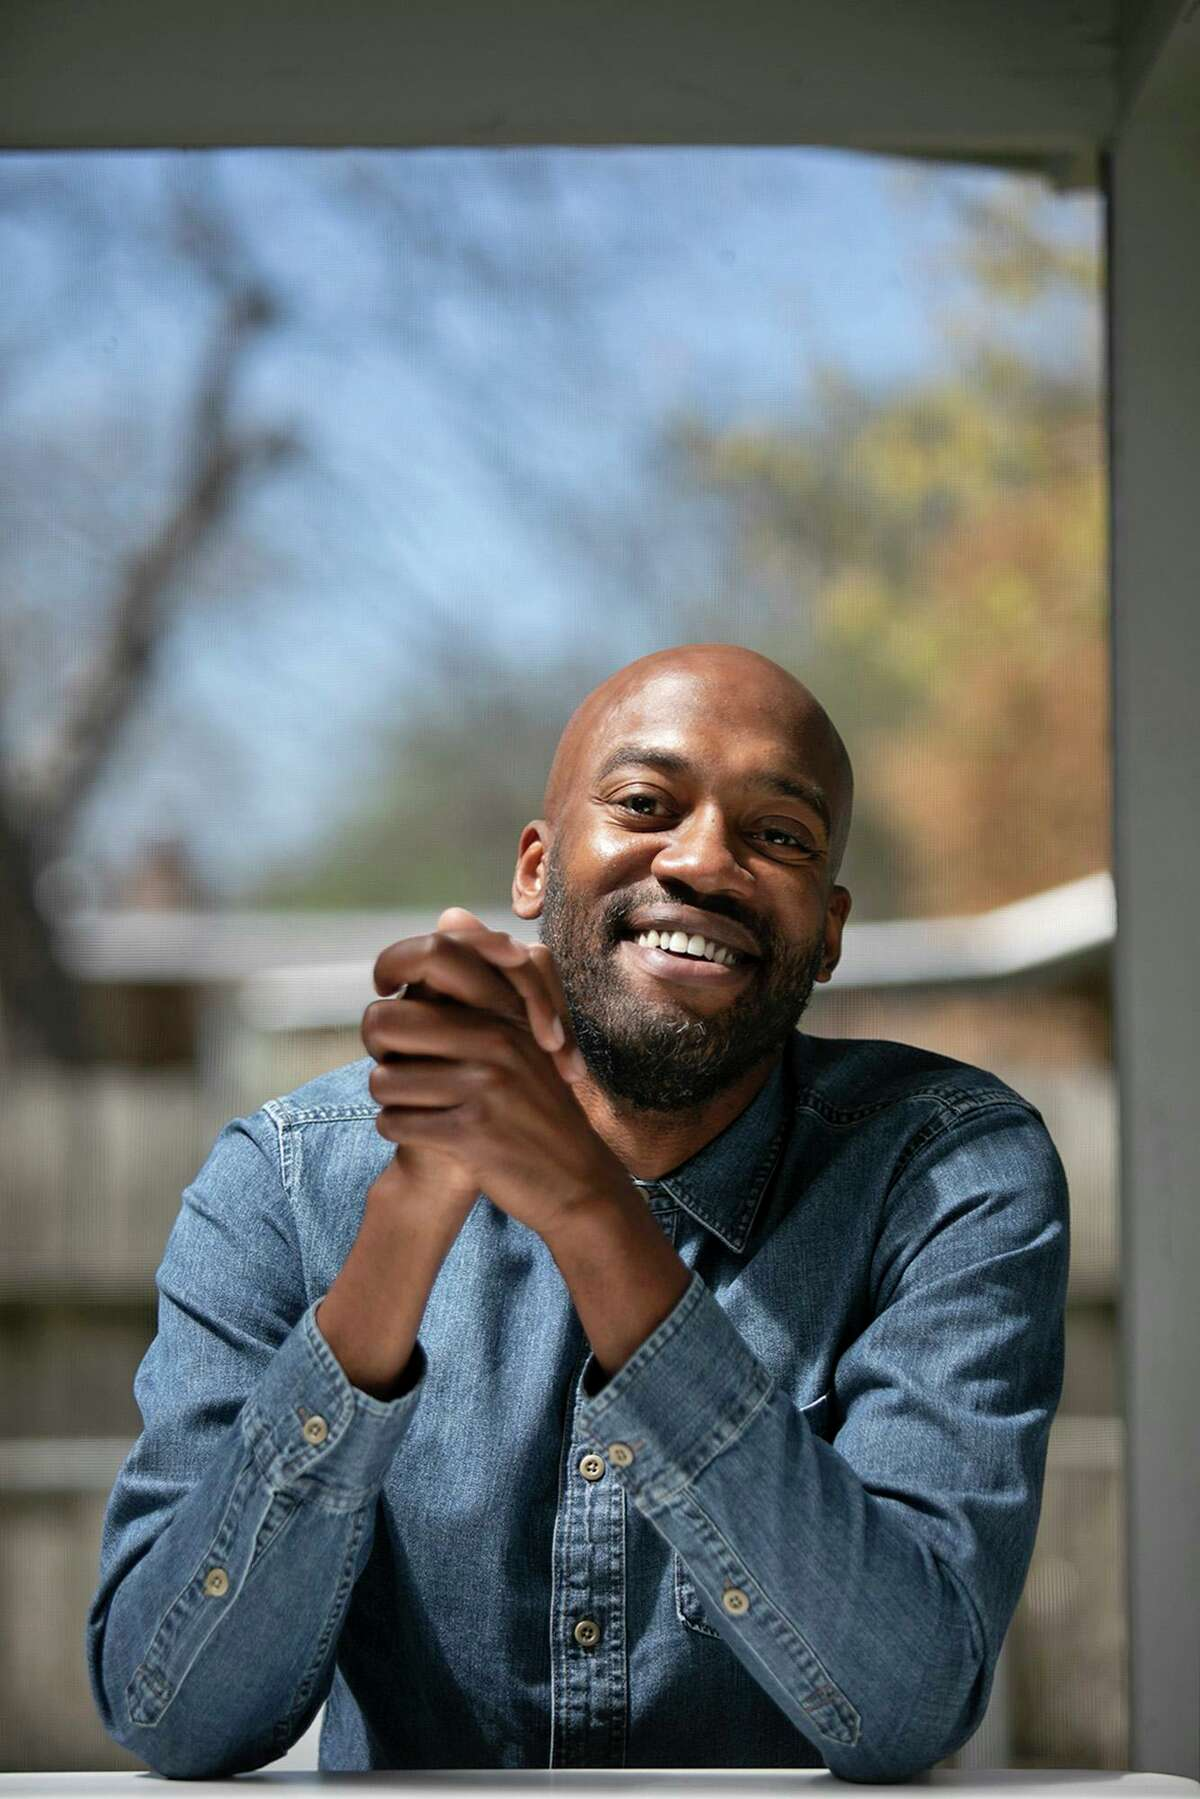 """Sam Sanders, host of NPR's """"It's Been a Minute,"""" has spent the pandemic traveling across the country, including a fair amount of time in San Antonio, his home town. Last year, he recorded his show here for about six months."""